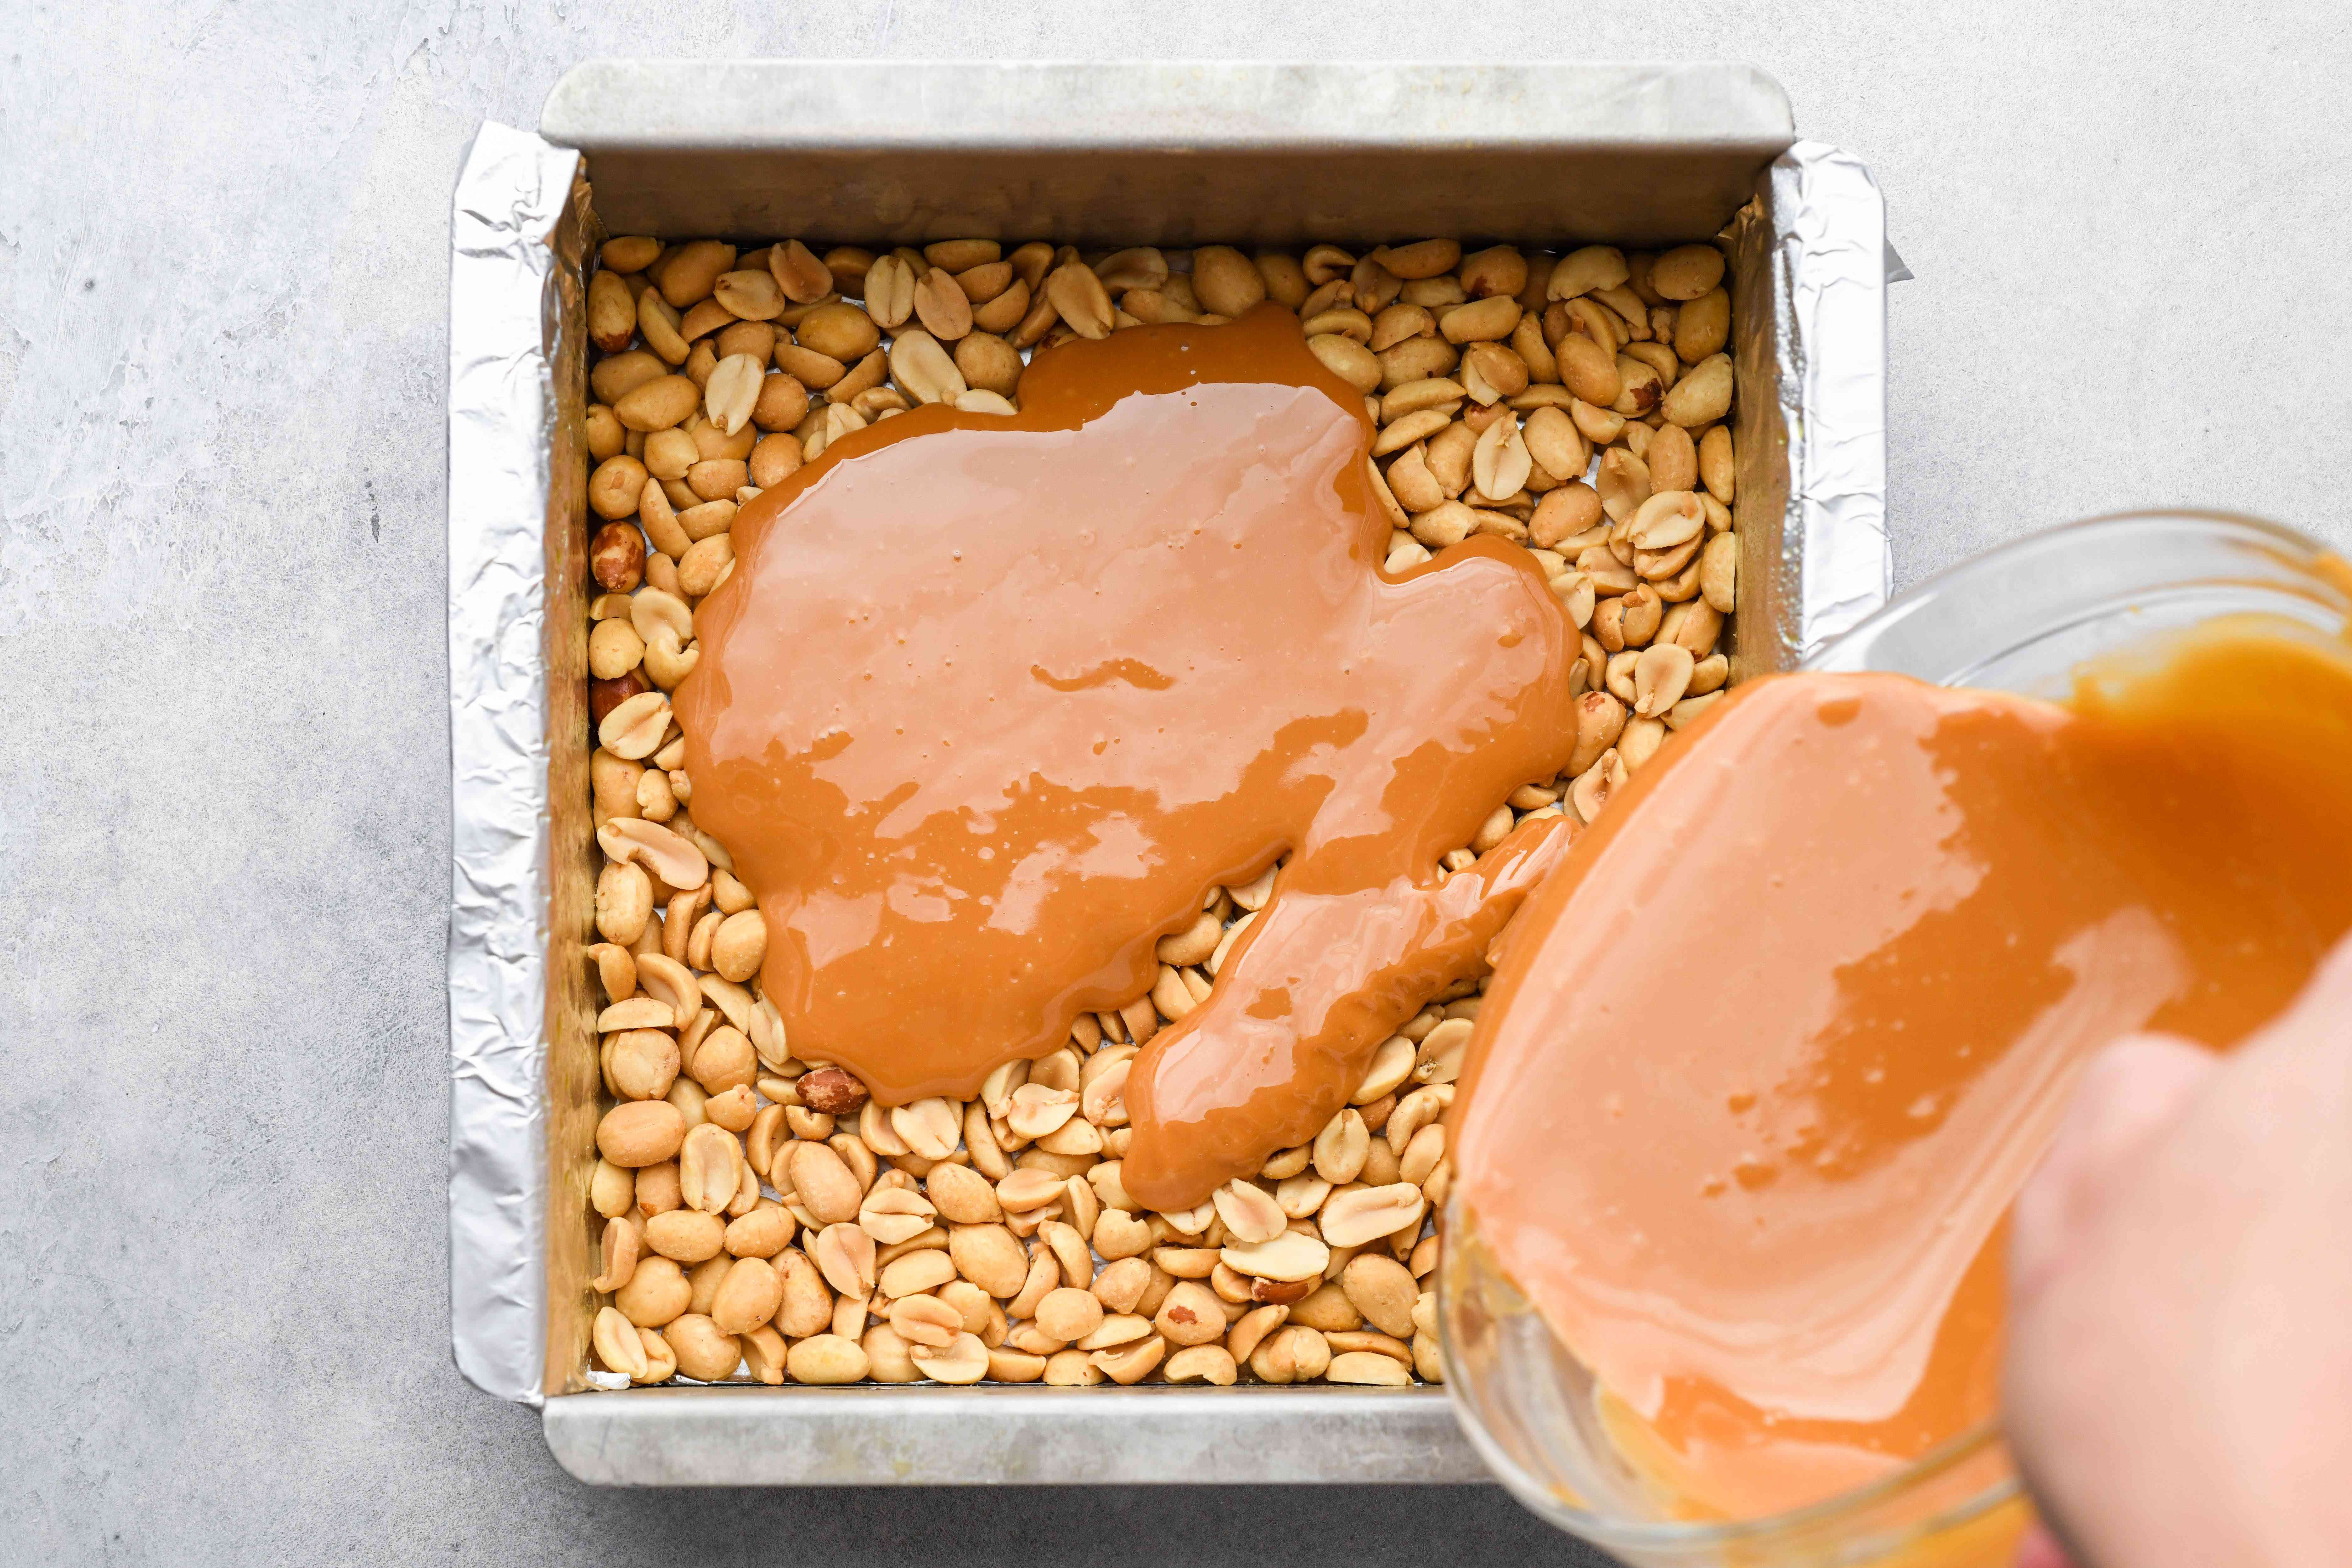 Pour the caramel over the peanuts in the pan